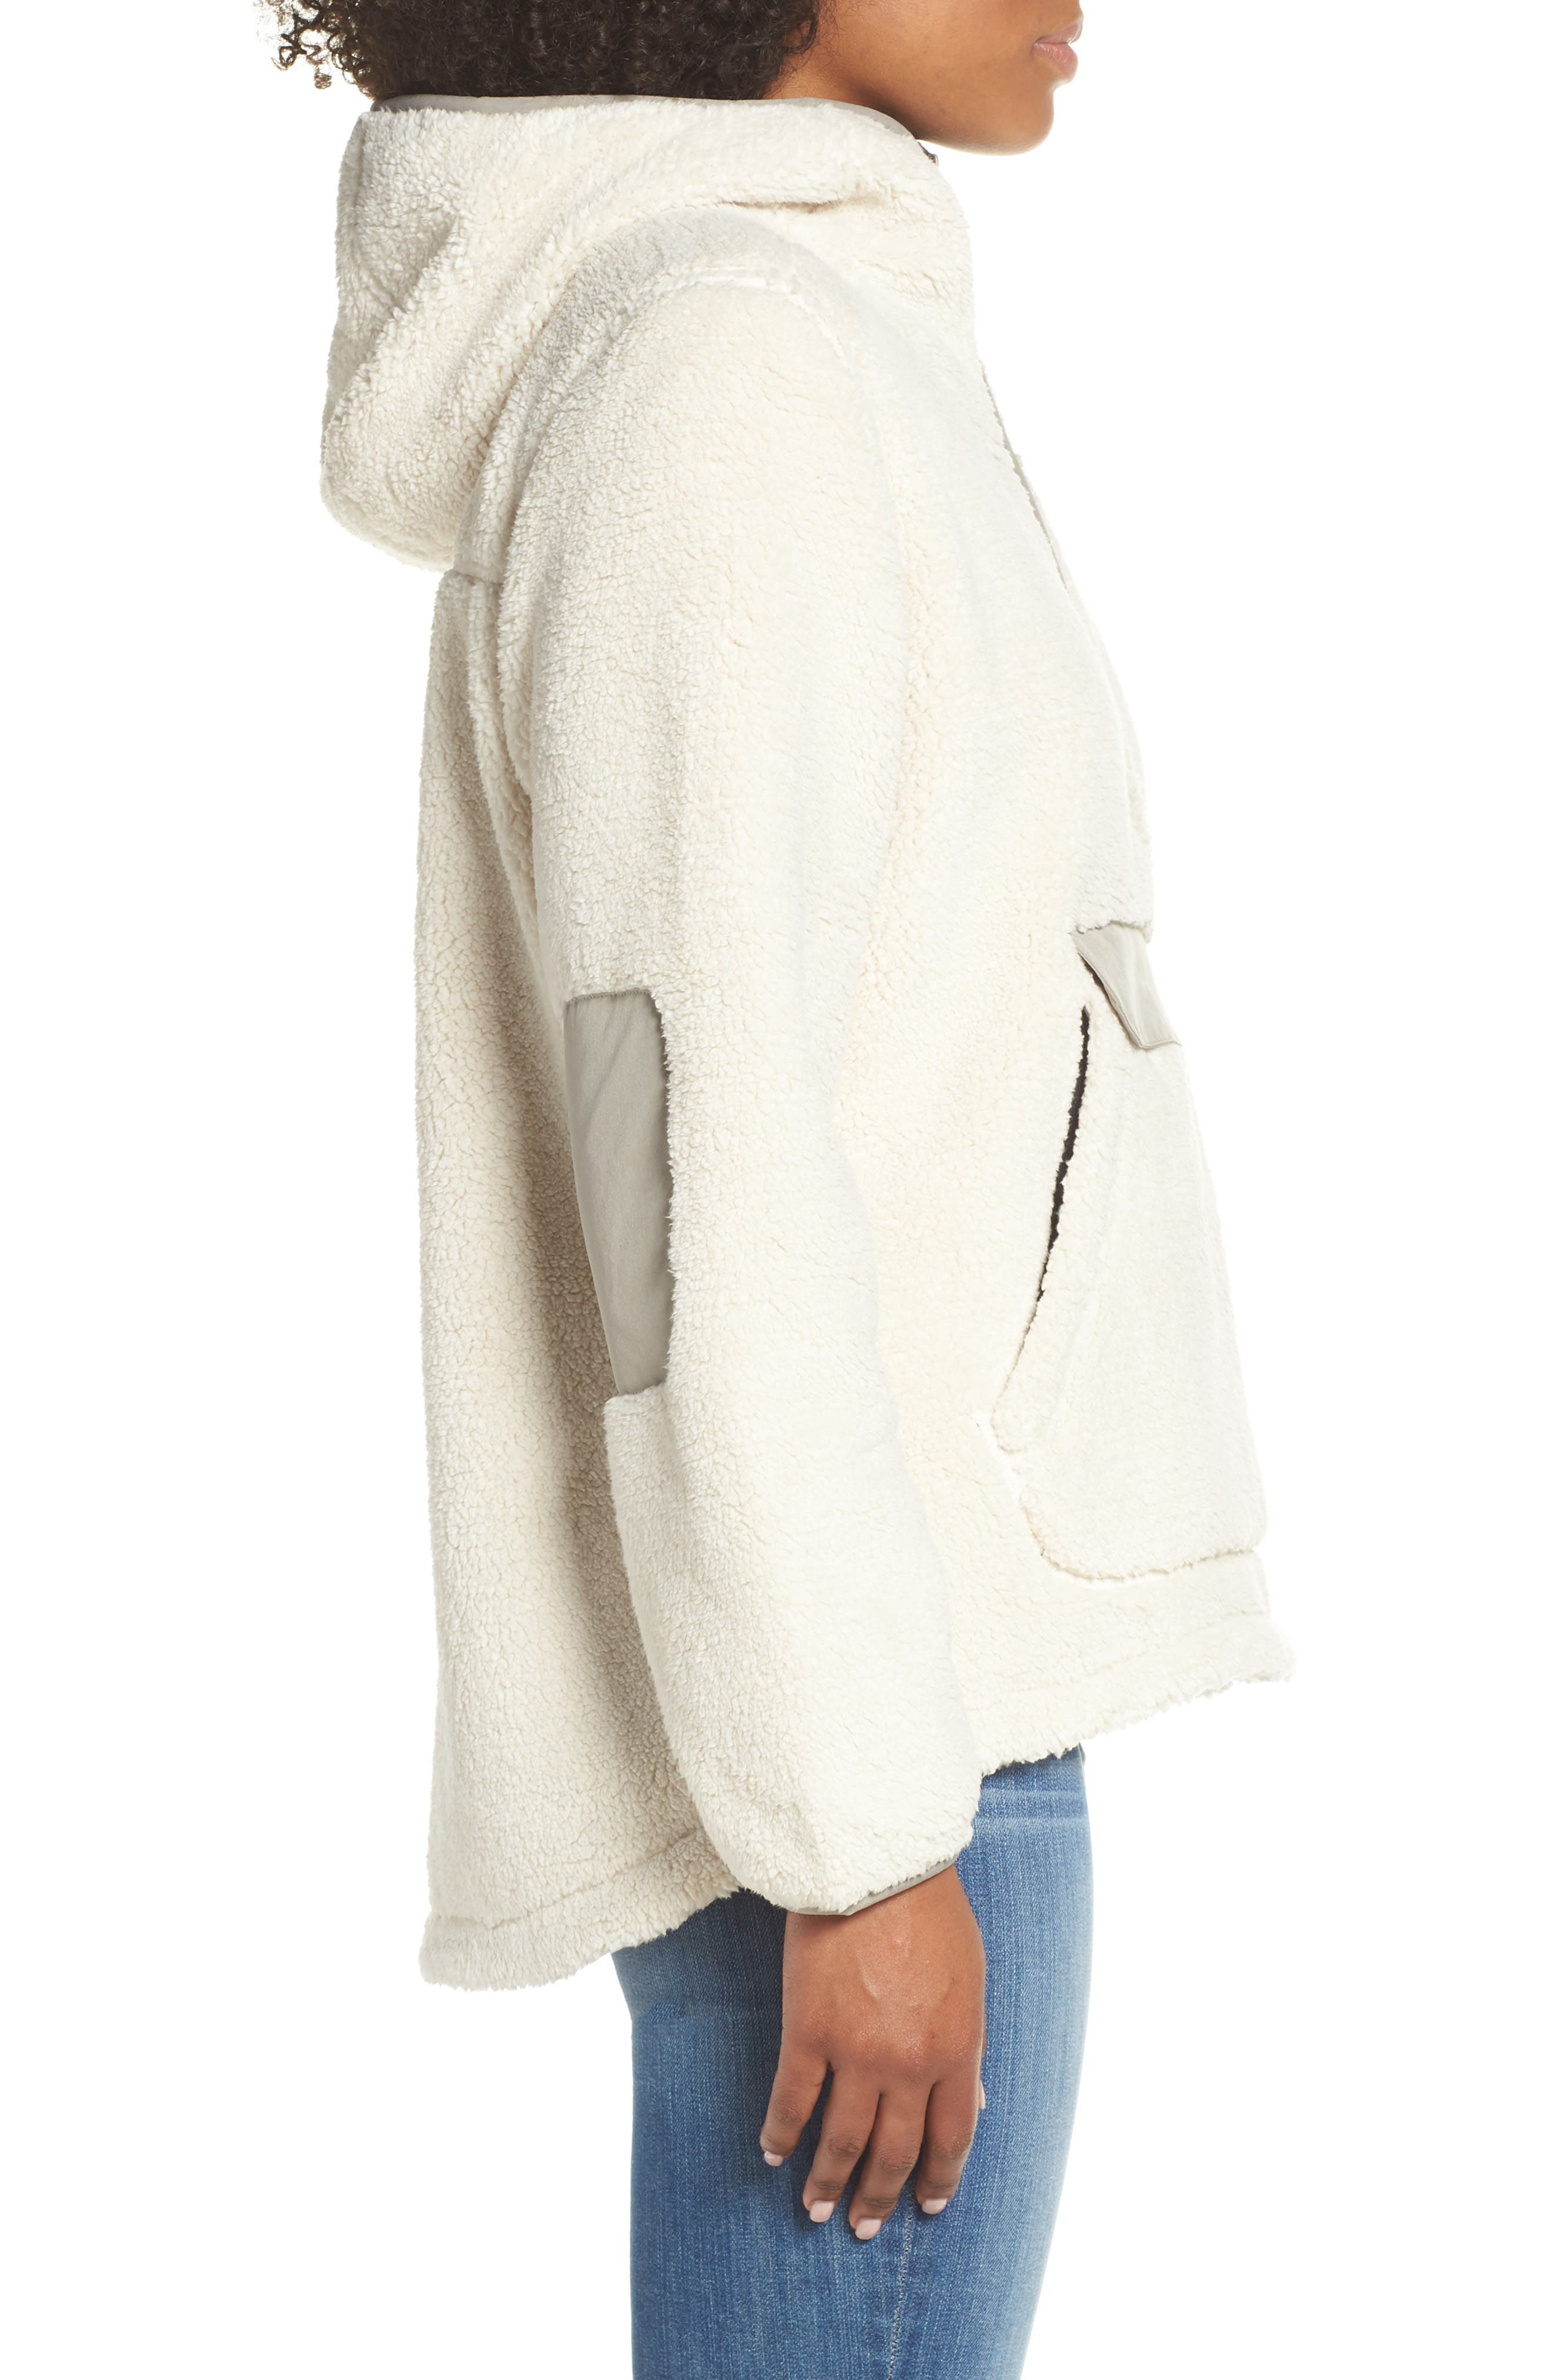 THE NORTH FACE,                             Campshire High Pile Fleece Pullover Hoodie,                             Alternate thumbnail 3, color,                             VINTAGE WHITE/ GREY